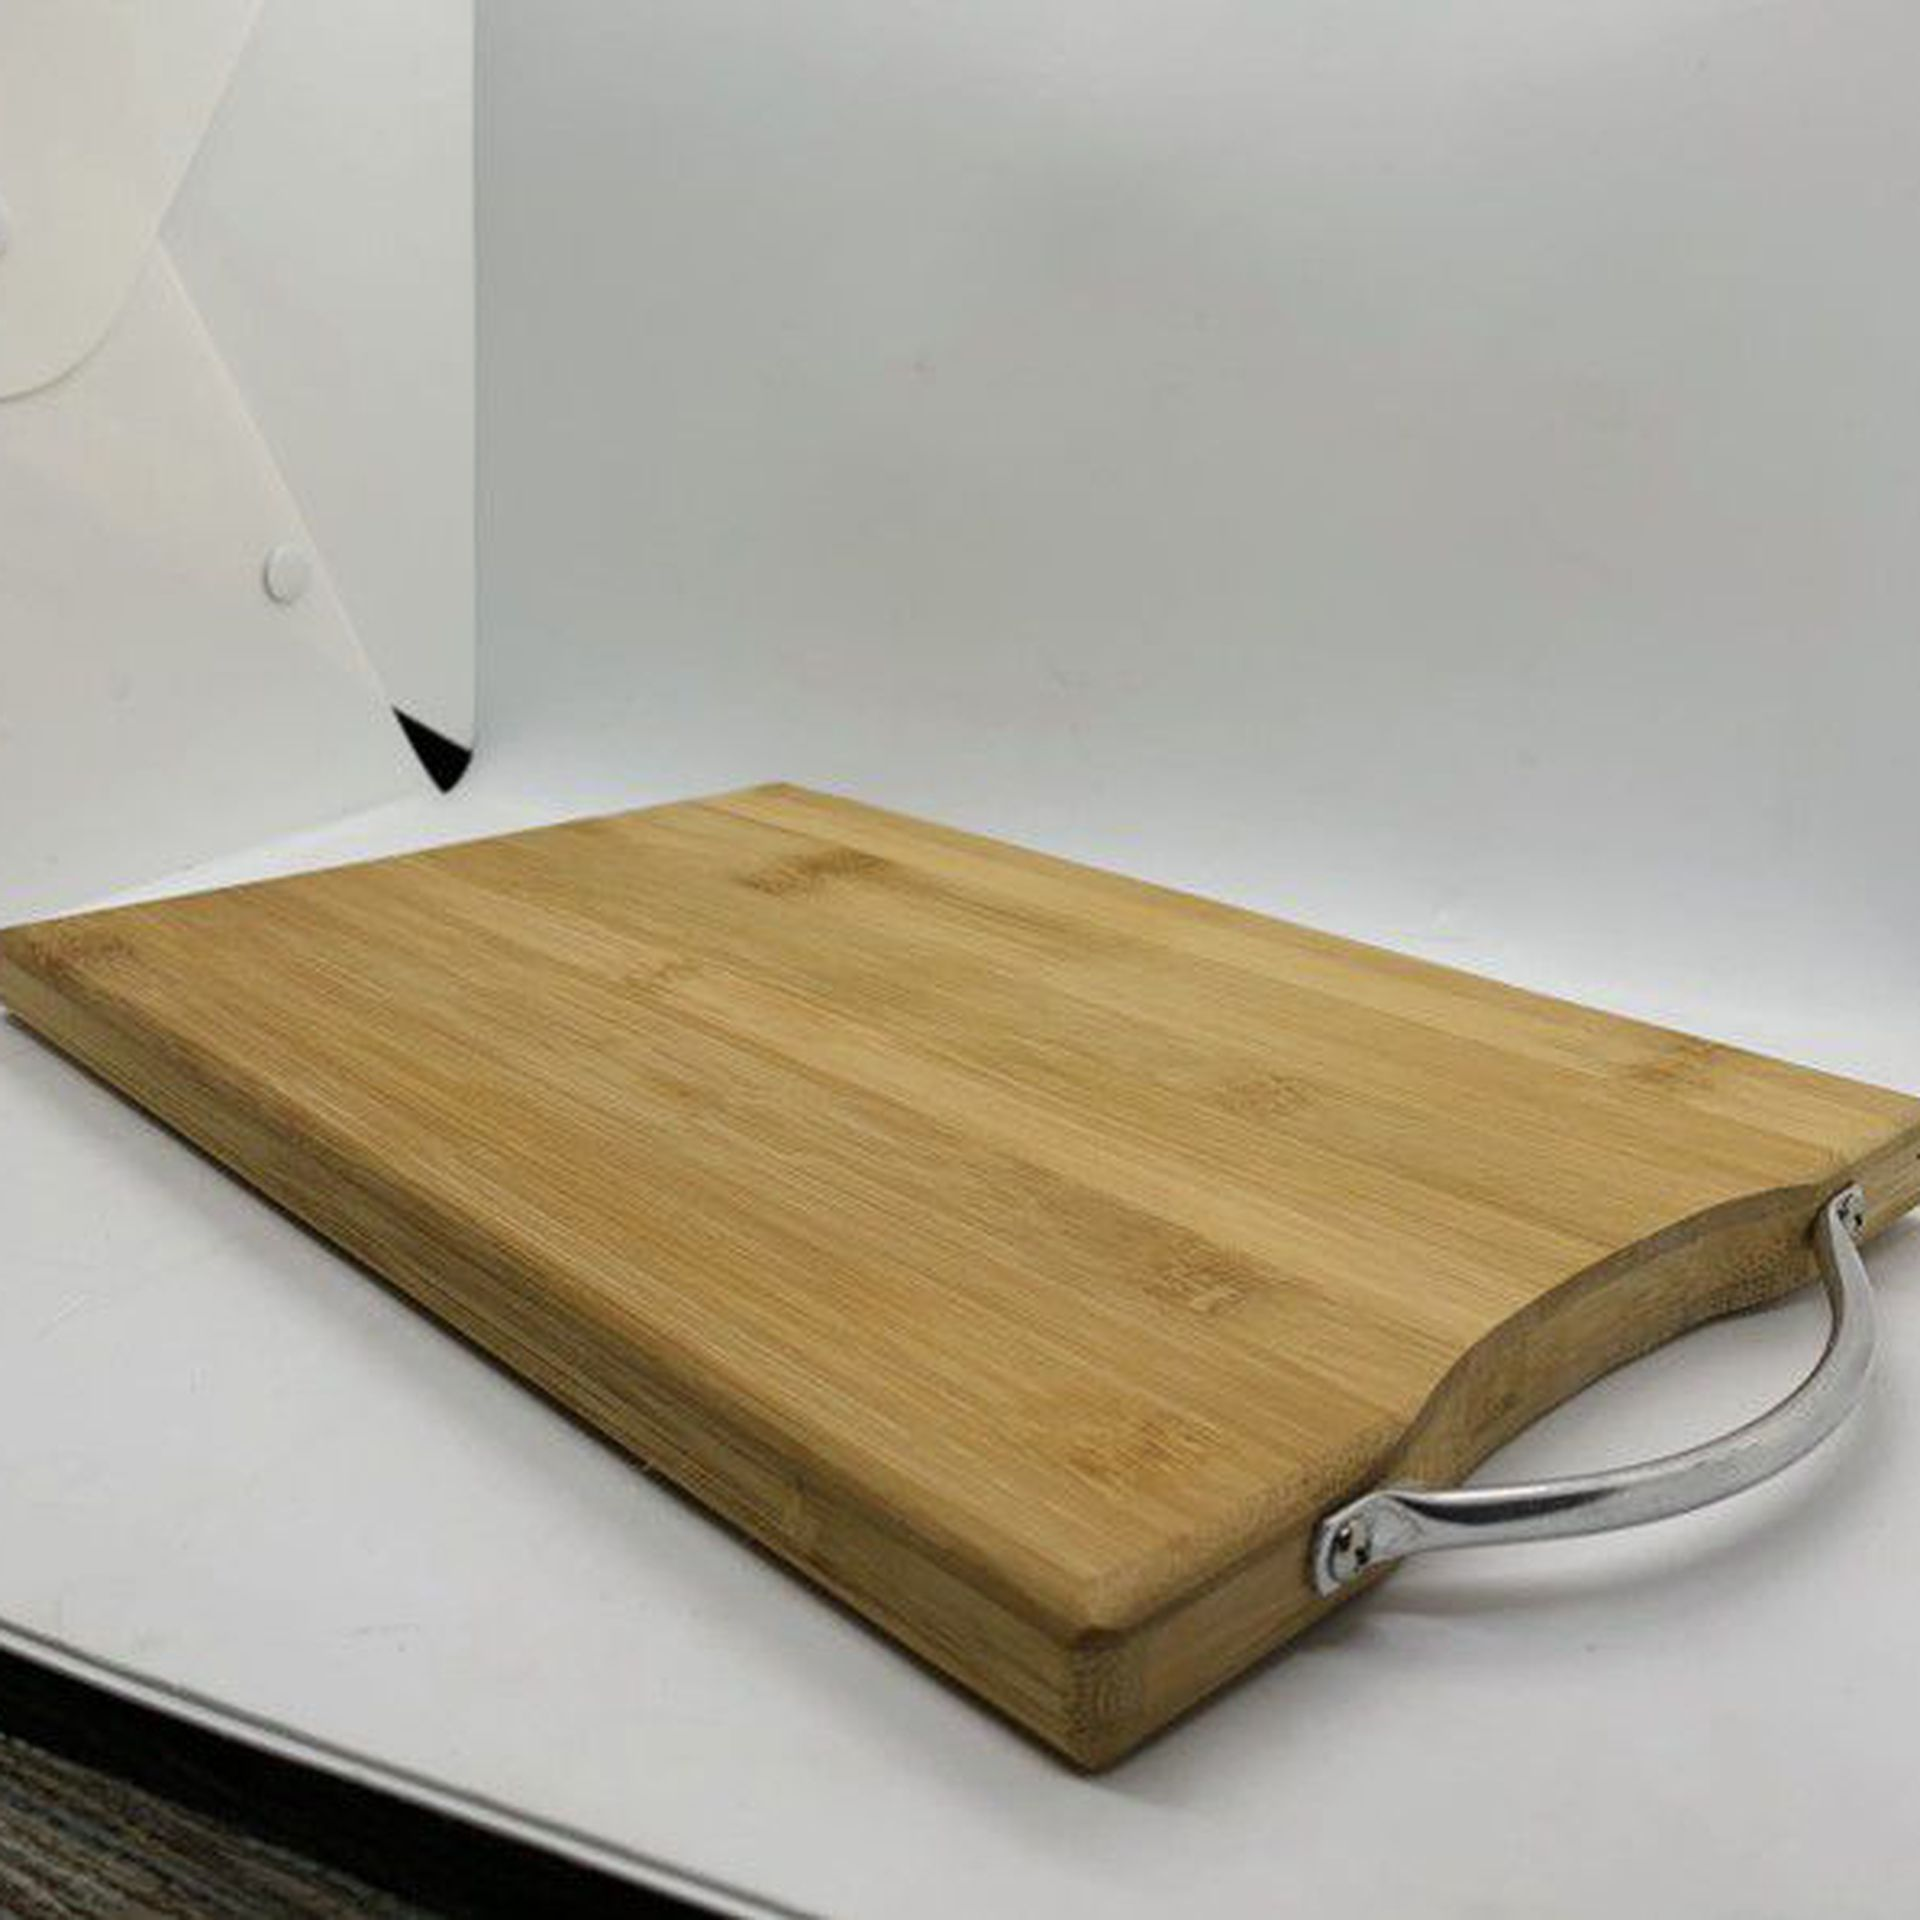 Snow White Laser Engraved Bamboo High Quality Cutting Board